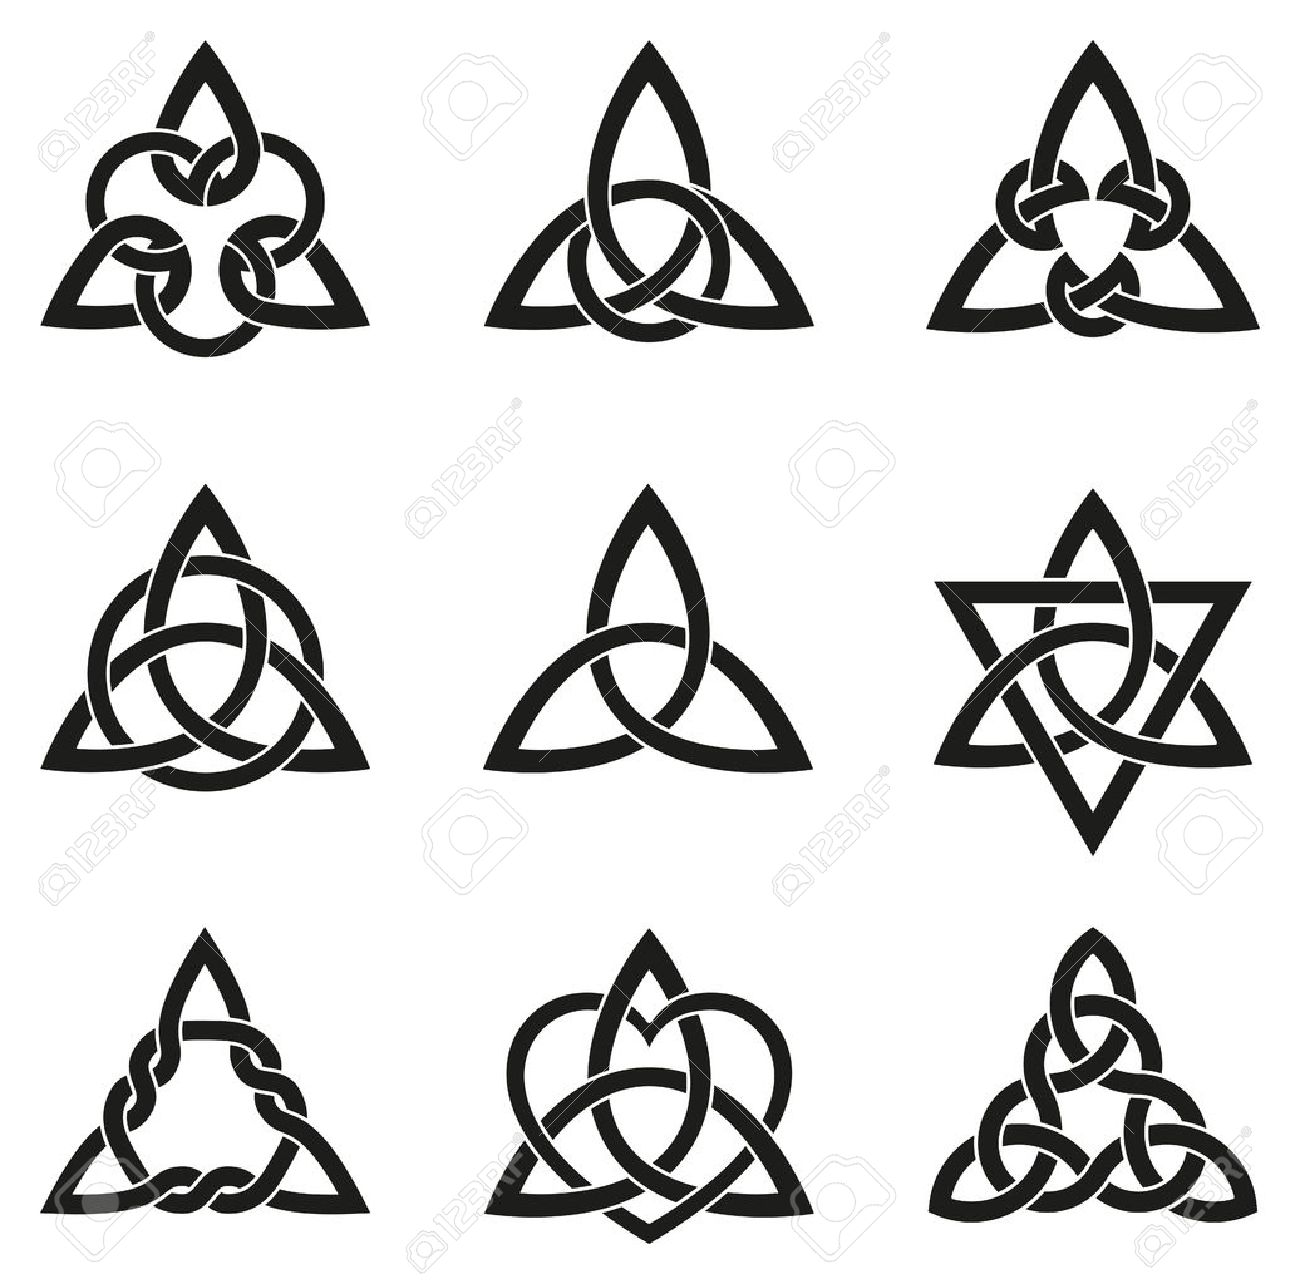 A variety of celtic knots used for decoration or tattoos nine a variety of celtic knots used for decoration or tattoos nine endless basket weave knots buycottarizona